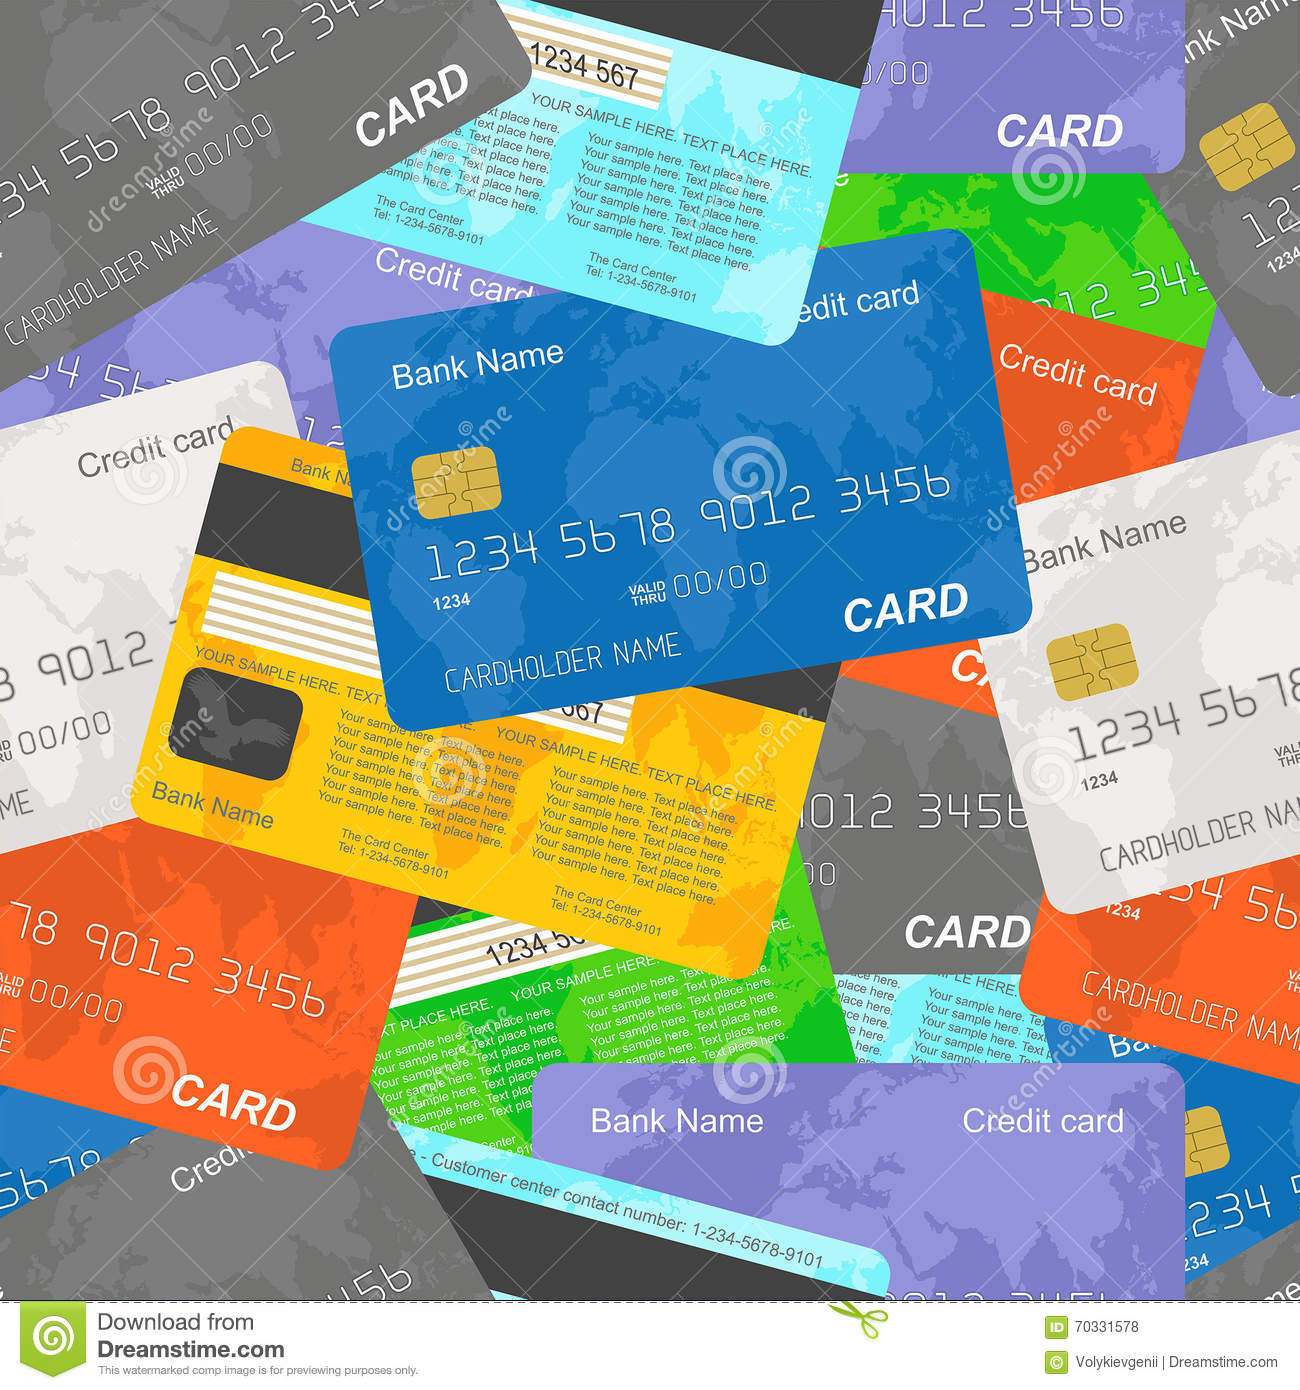 Corporate Credit Card For Travel Expenses Autos Post